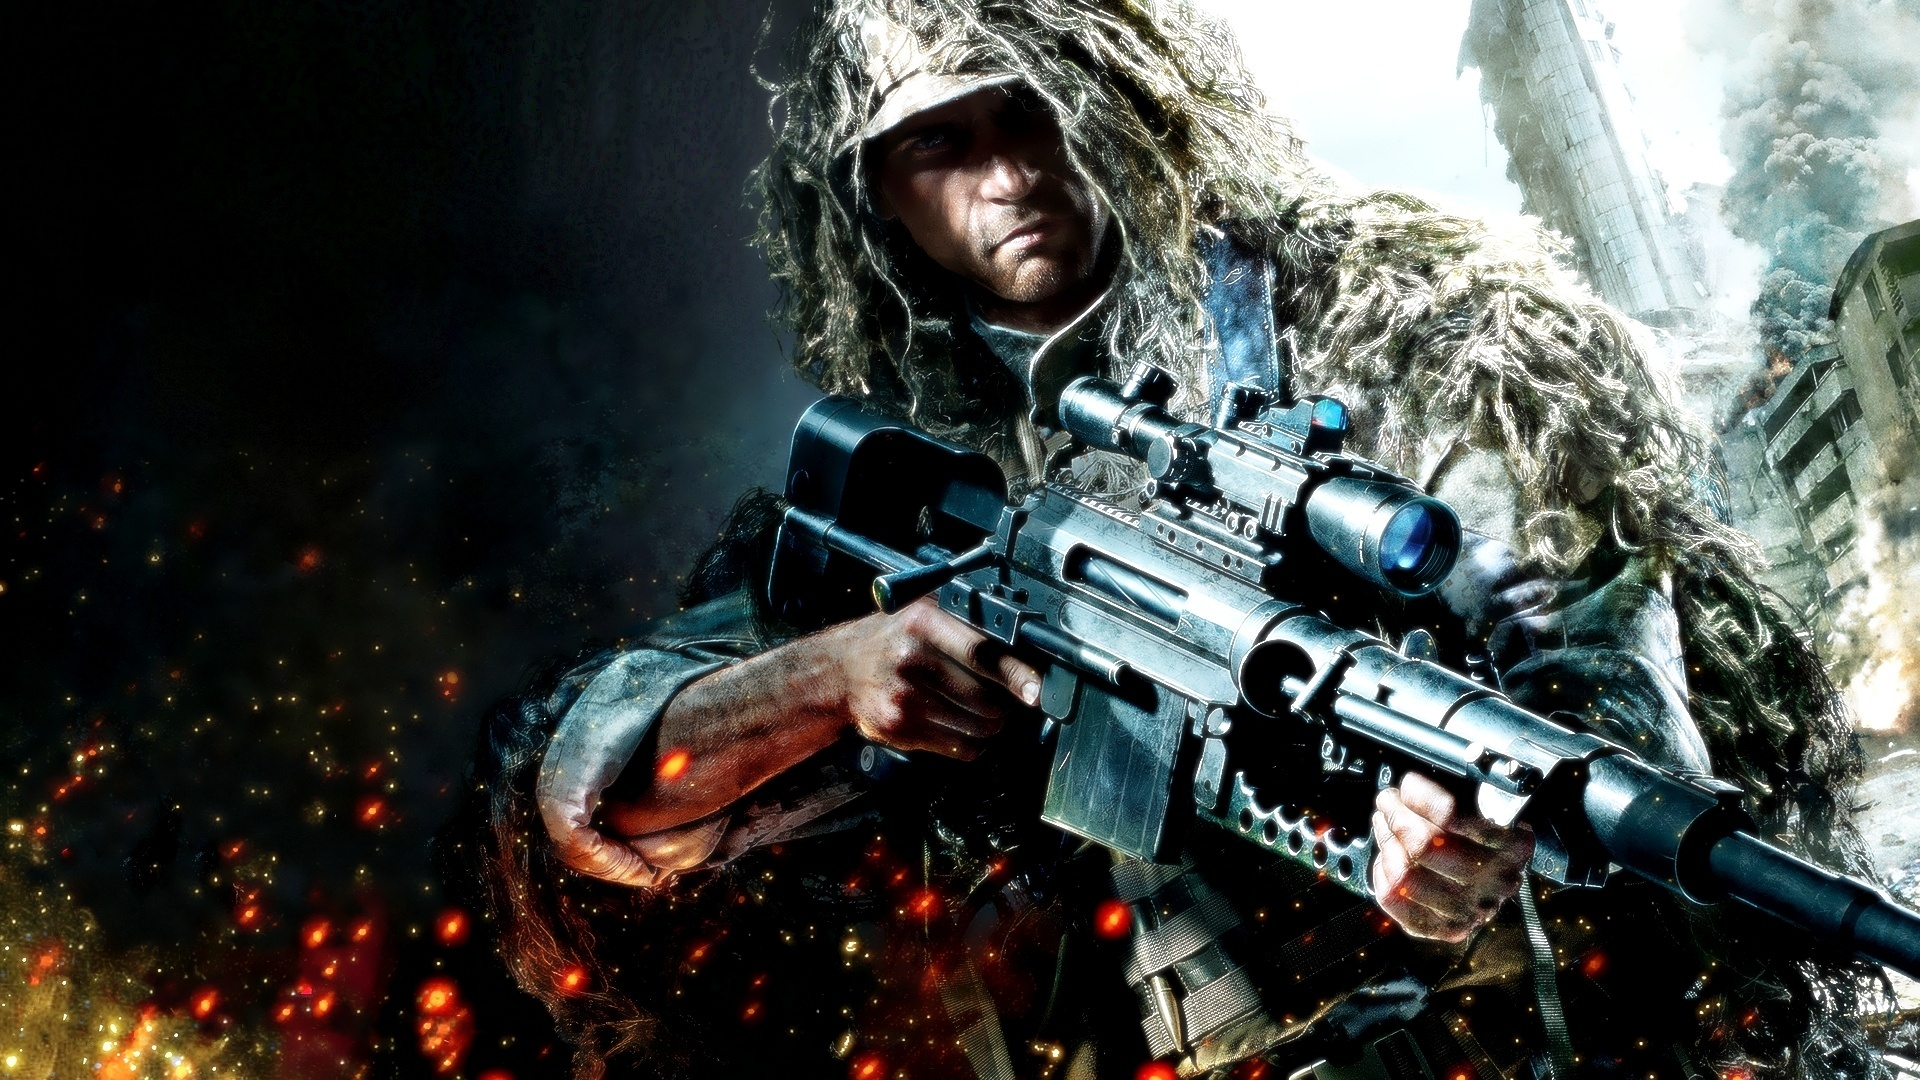 Sniper Ghost Warrior Full HD Wallpaper And Background Image